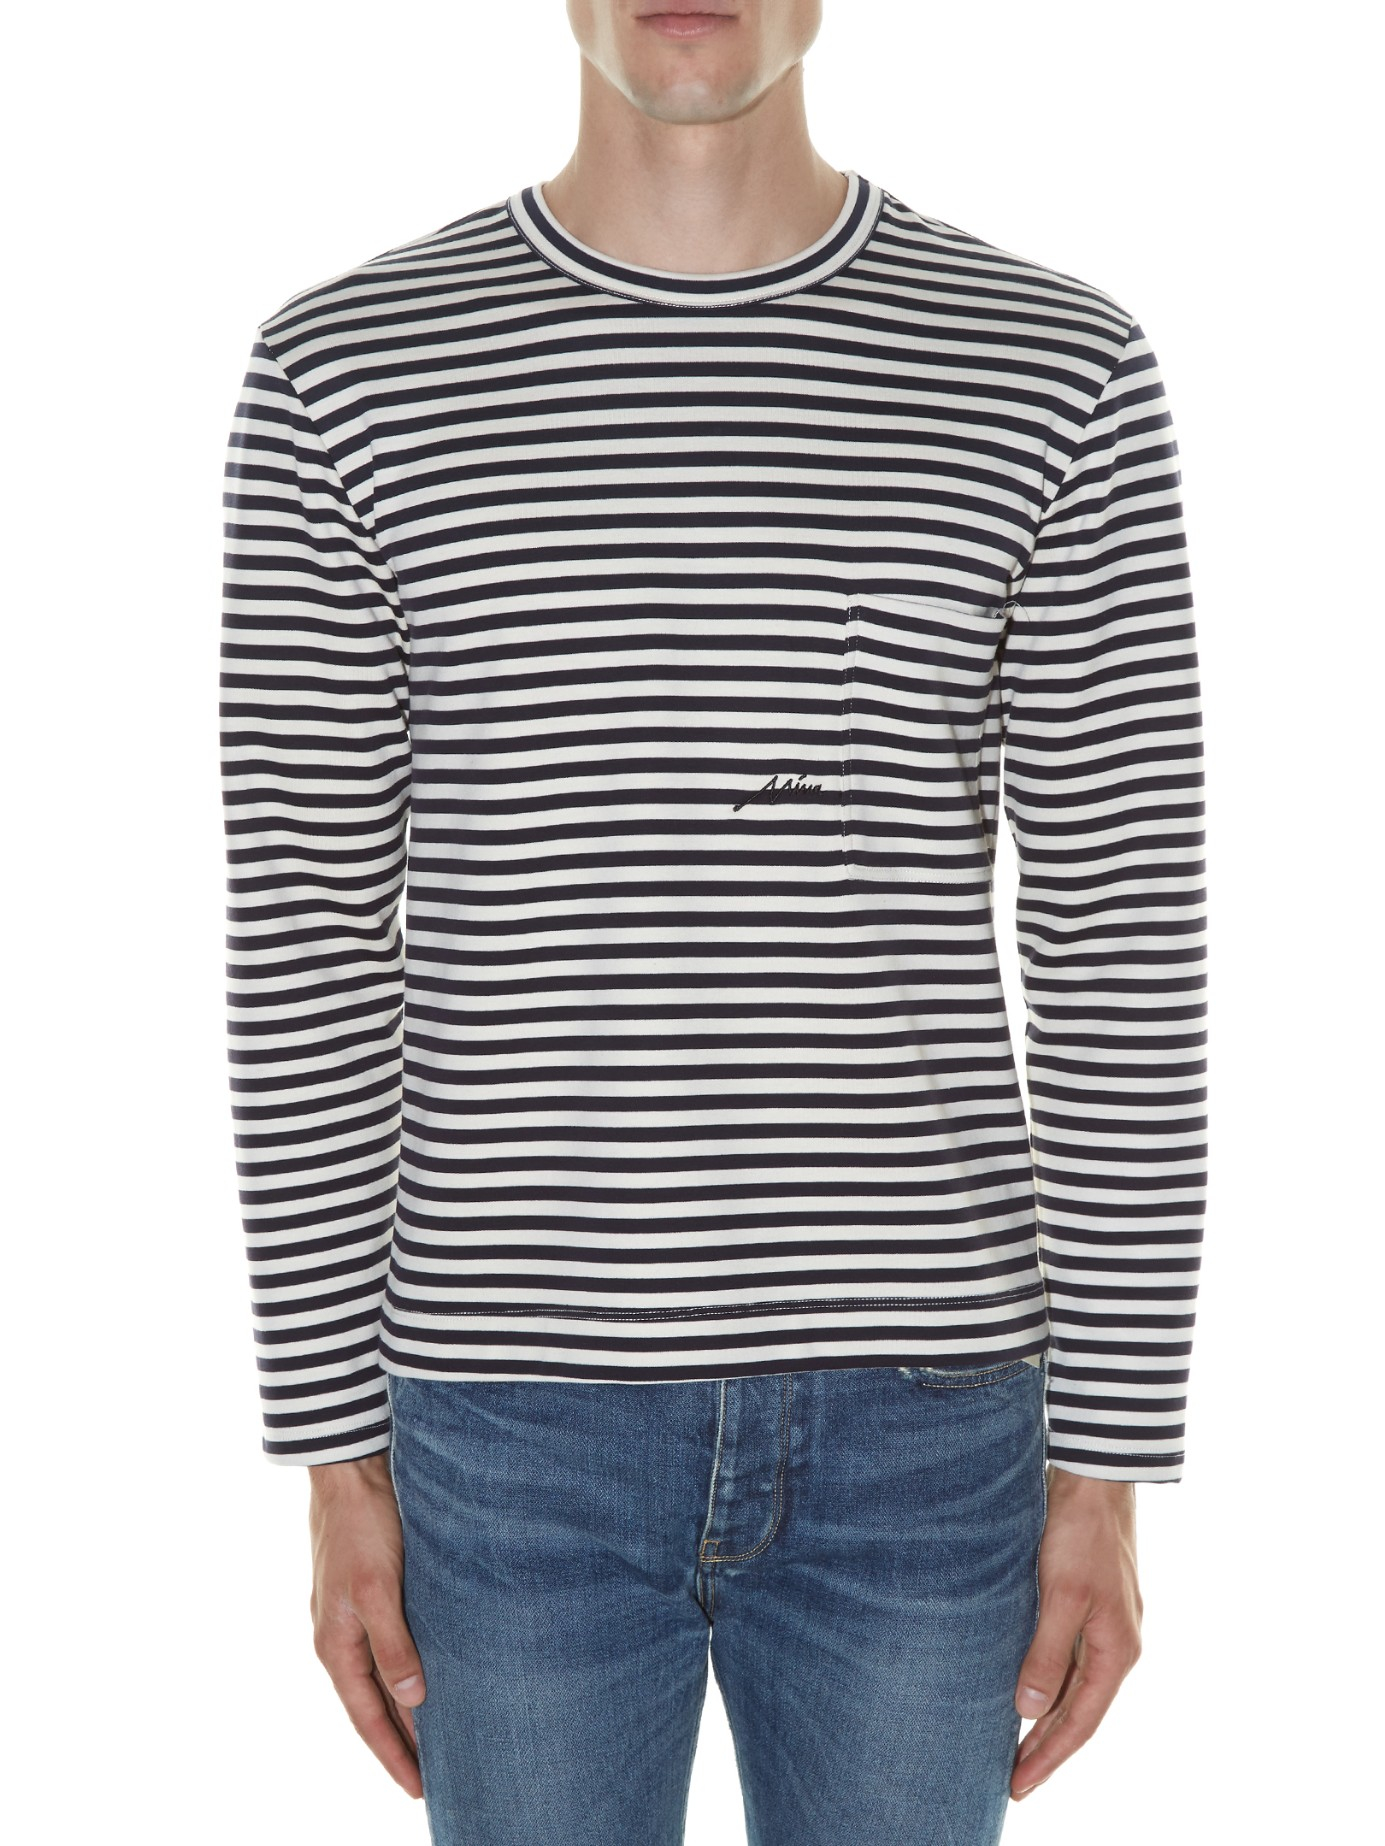 Golden goose deluxe brand wade striped long sleeved t for Navy blue striped long sleeve shirt